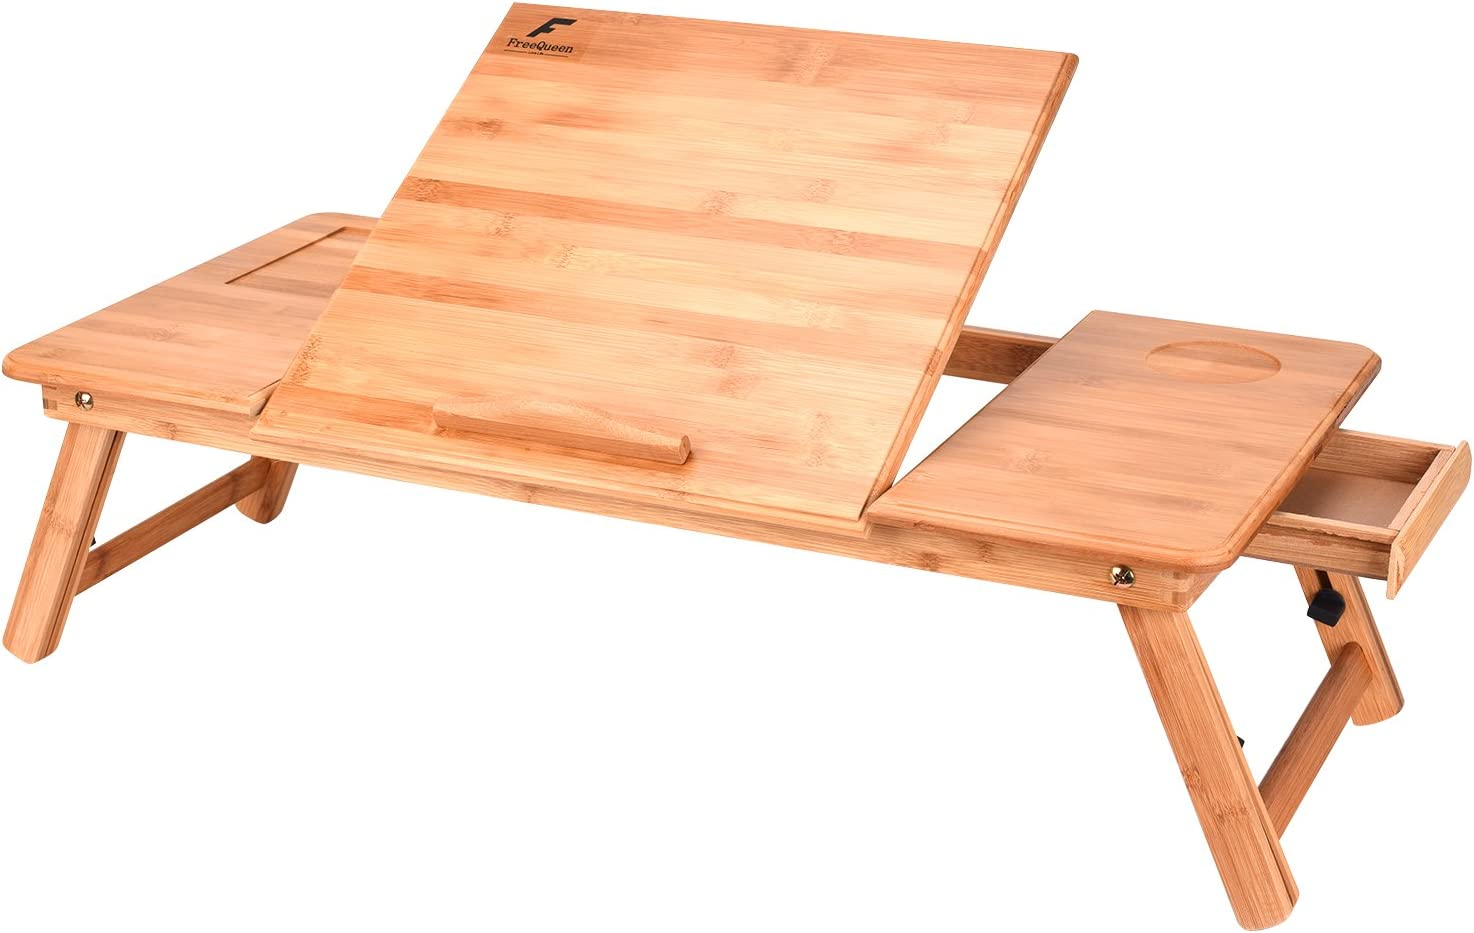 Adjustable Bamboo Laptop Desk Lengthened Foldable Wood Breakfast Table Computer Notebook Lap Desk Serving Bed Tray Stand Writing Table